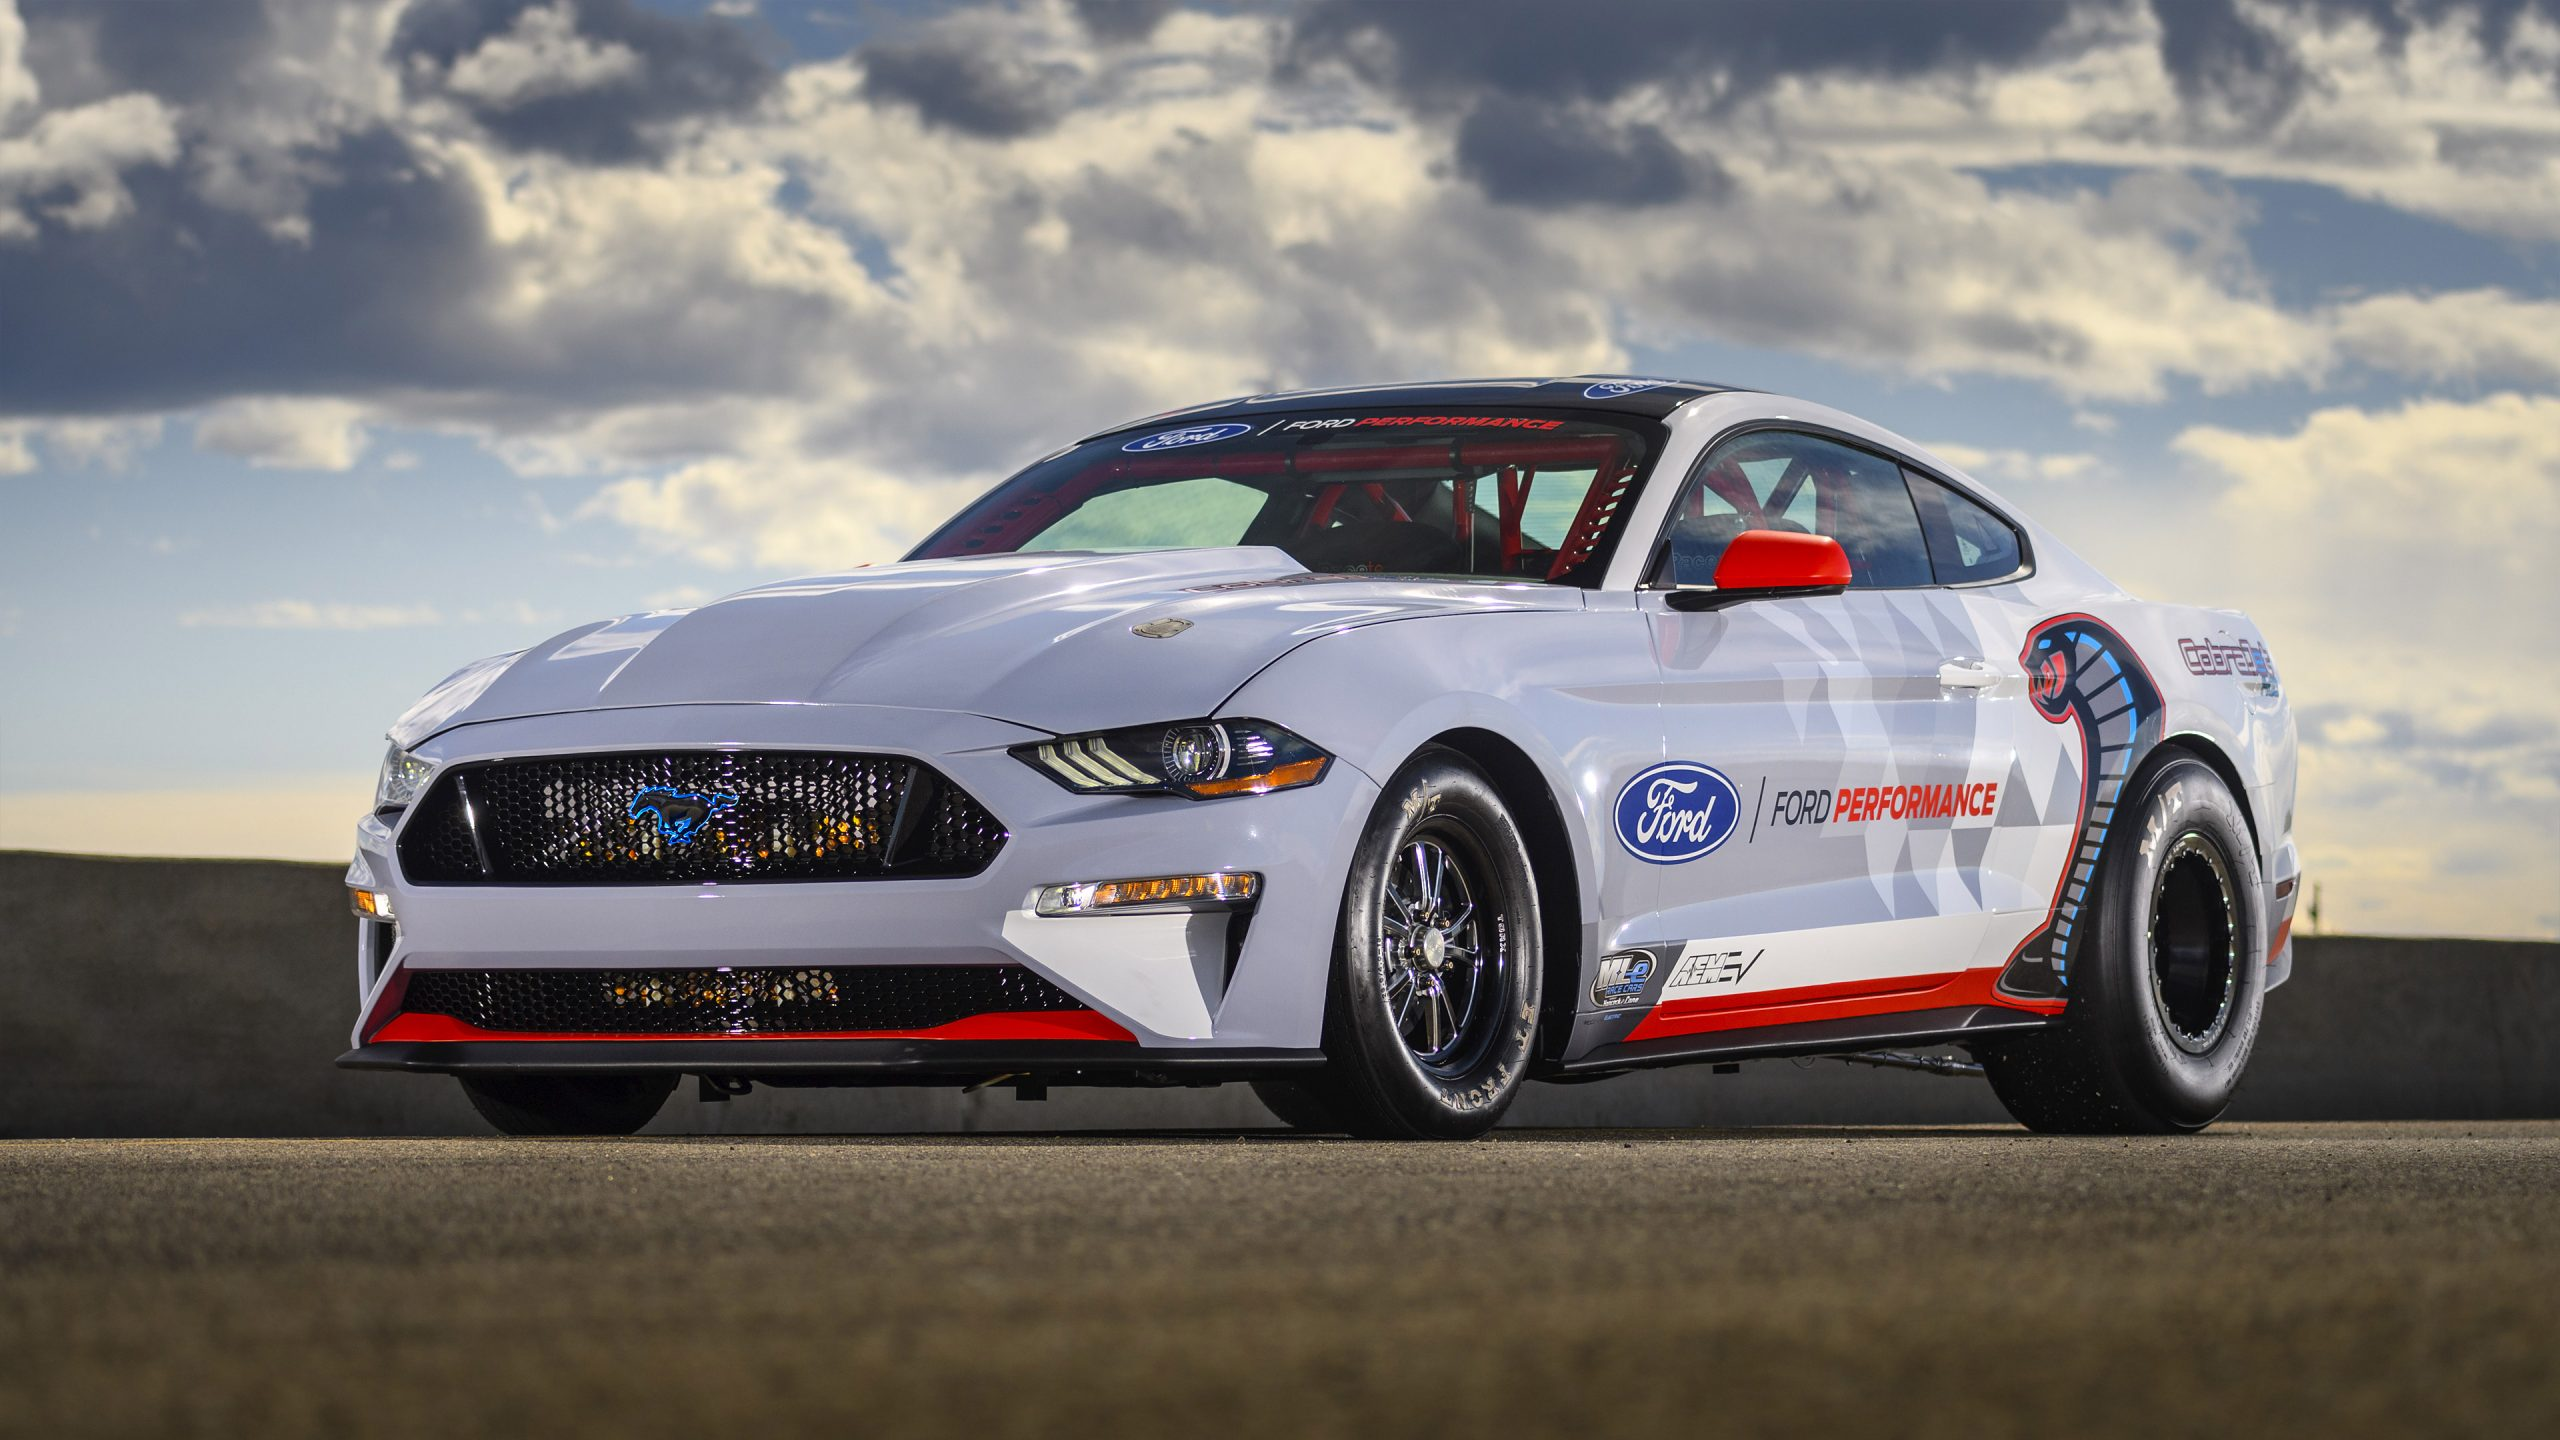 2020 Ford Mustang Cobra Jet 1400 Concept Wallpapers SuperCarsnet 2560x1440